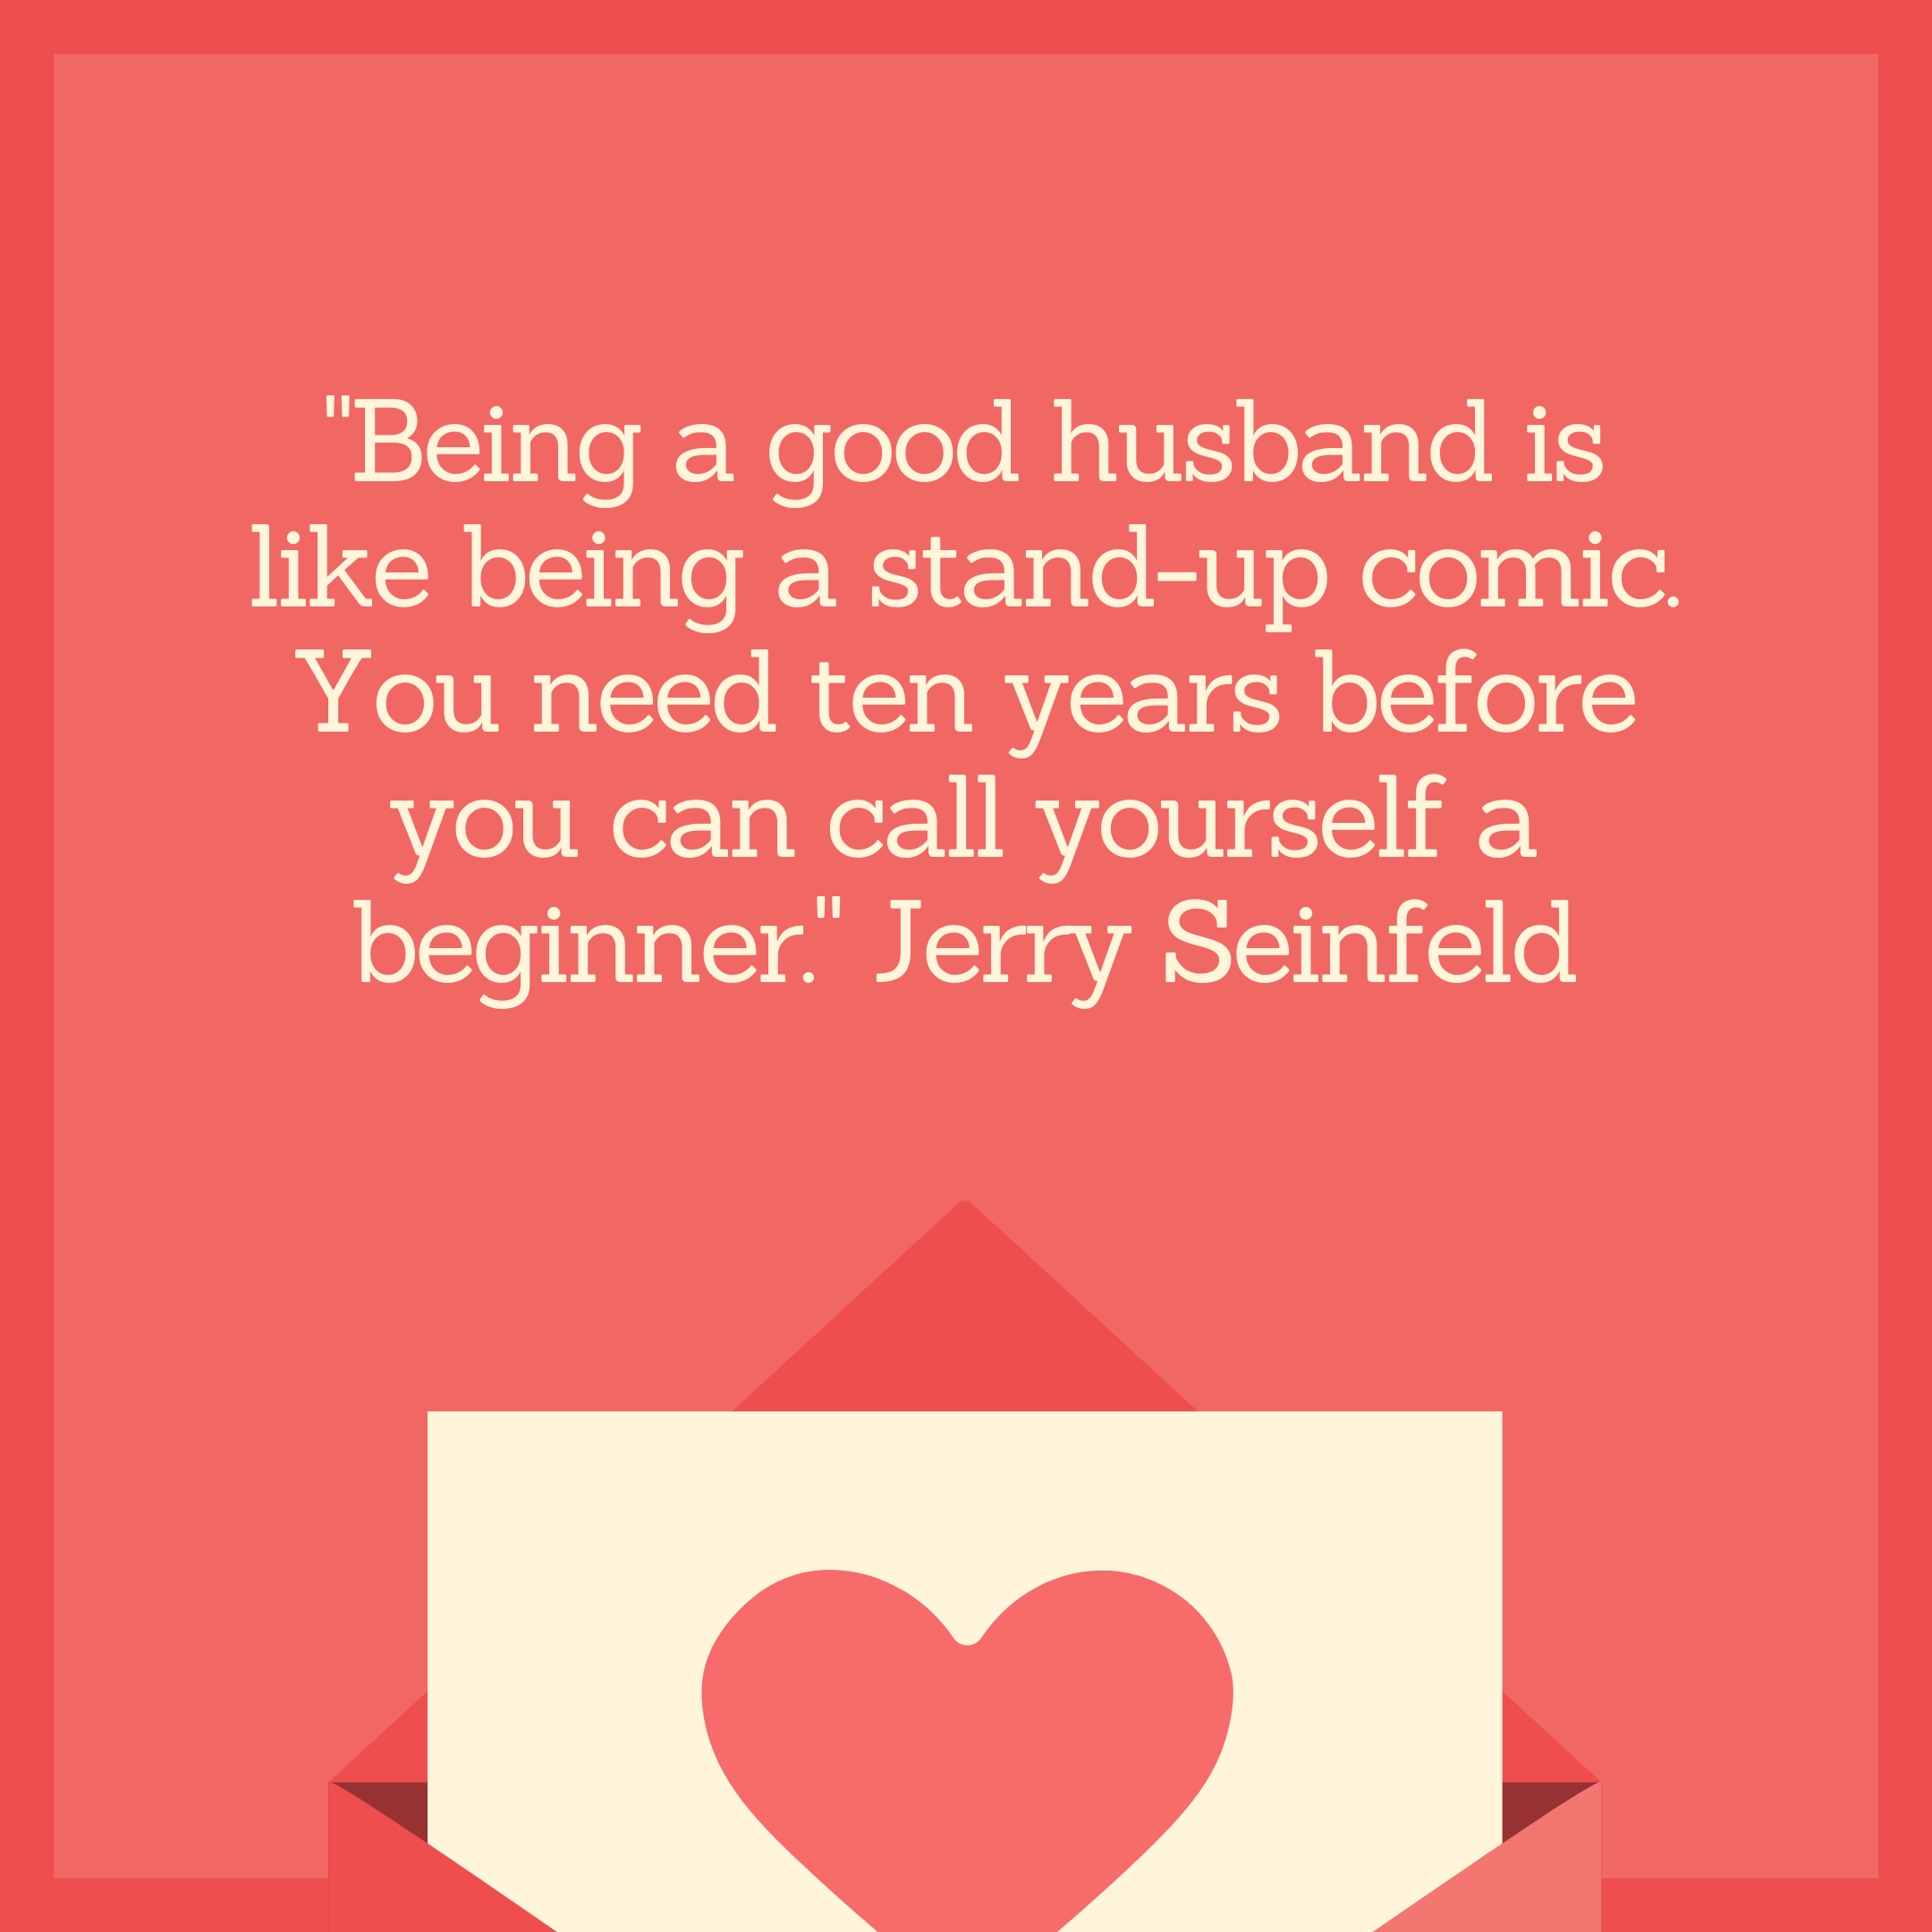 """Being a good husband is like being a stand-up comic. You need ten years before you can call yourself a beginner."" Jerry Seinfeld"